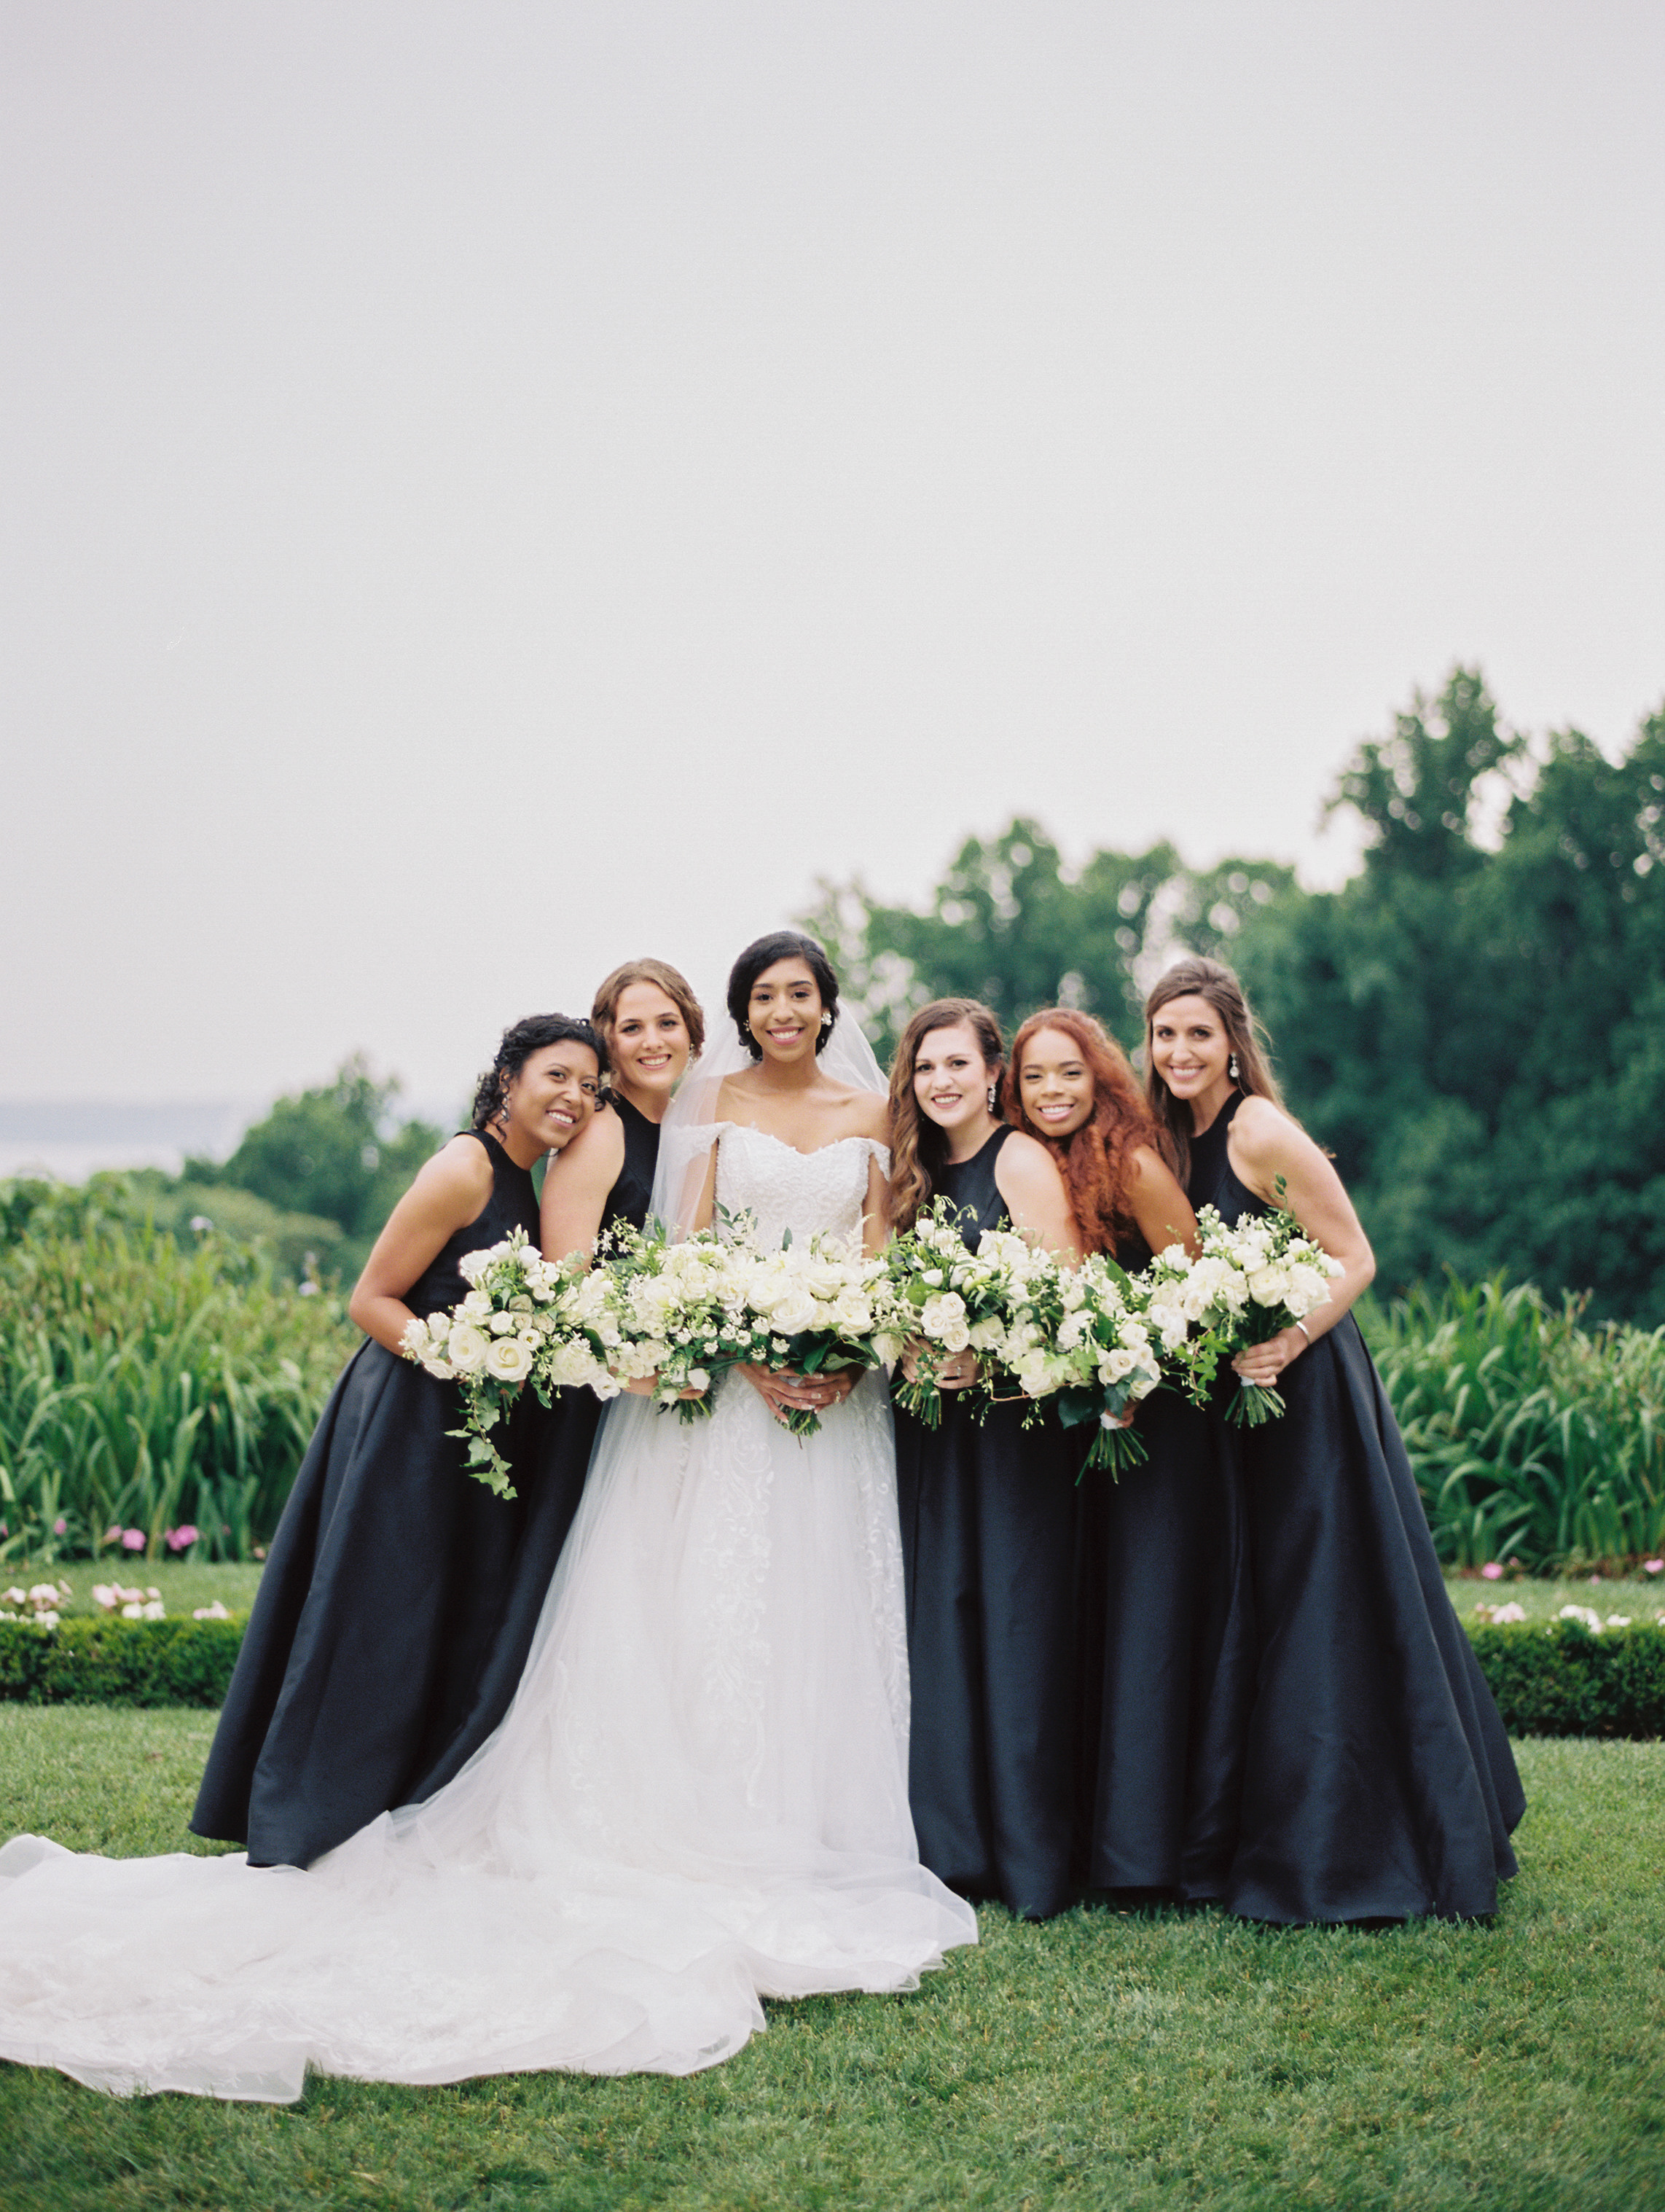 macey joshua wedding bridesmaids in black dresses